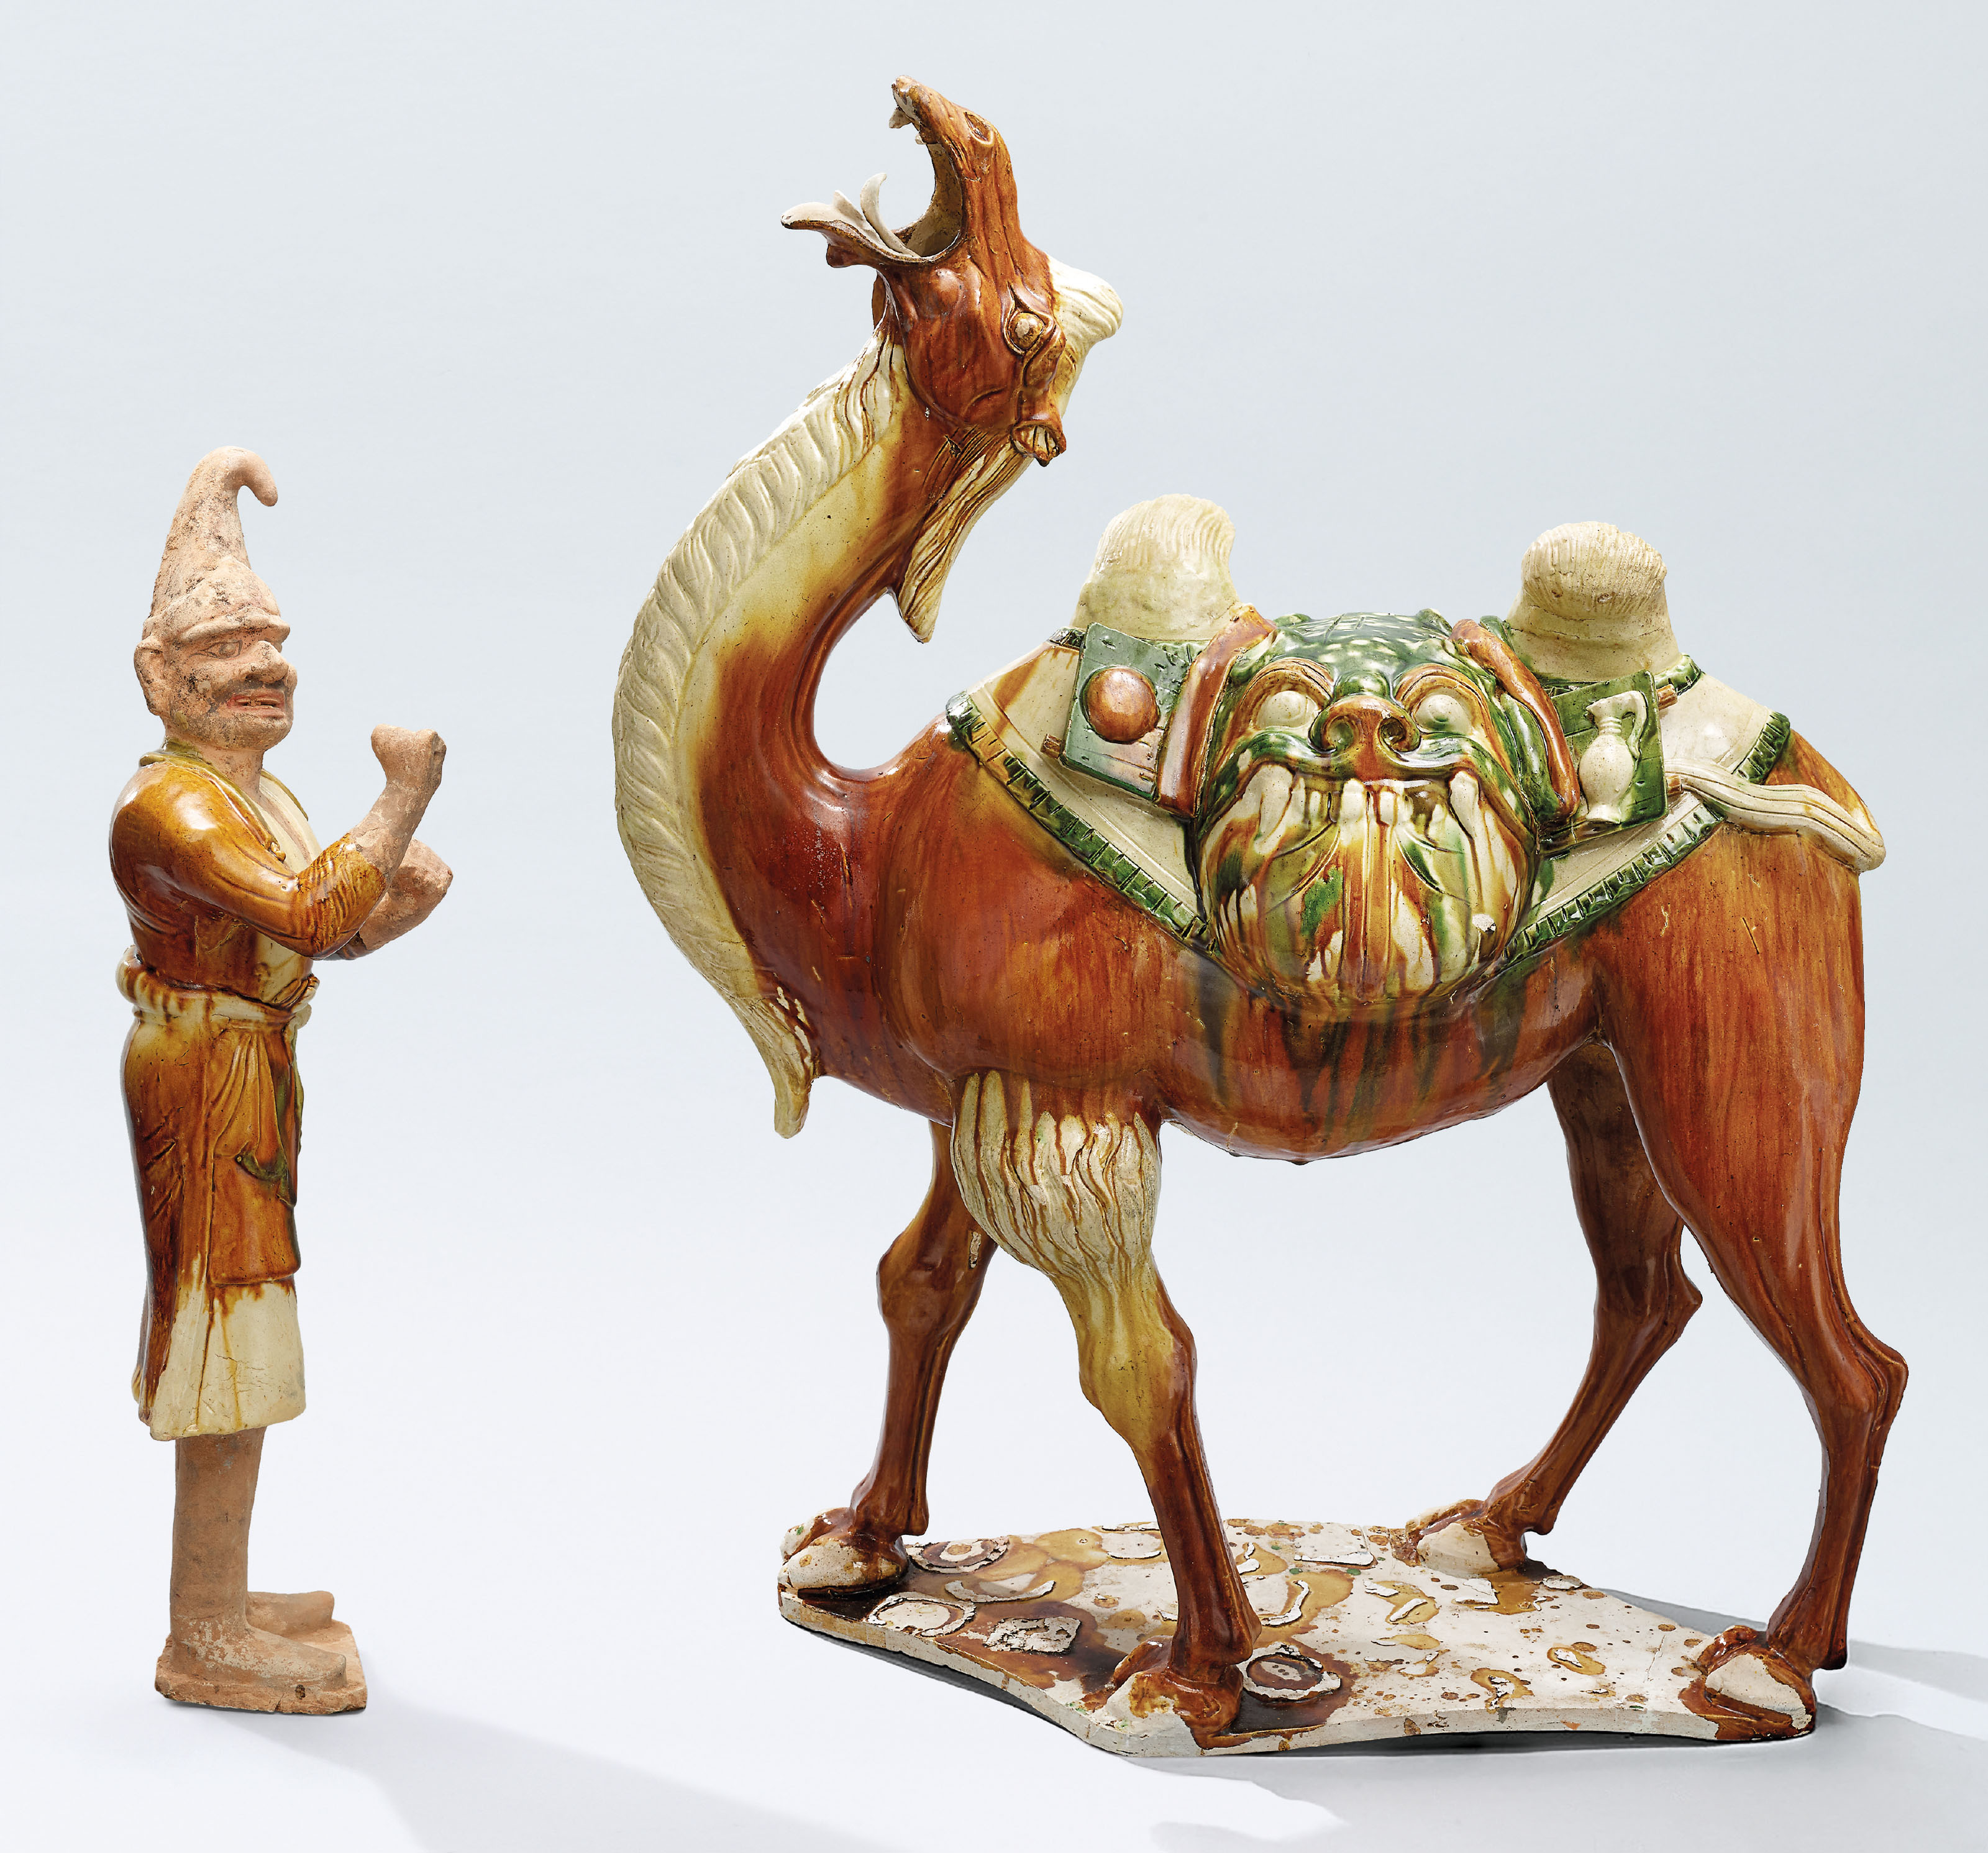 A MAGNIFICENT SANCAI-GLAZED CAMEL AND A FOREIGN ATTENDANT